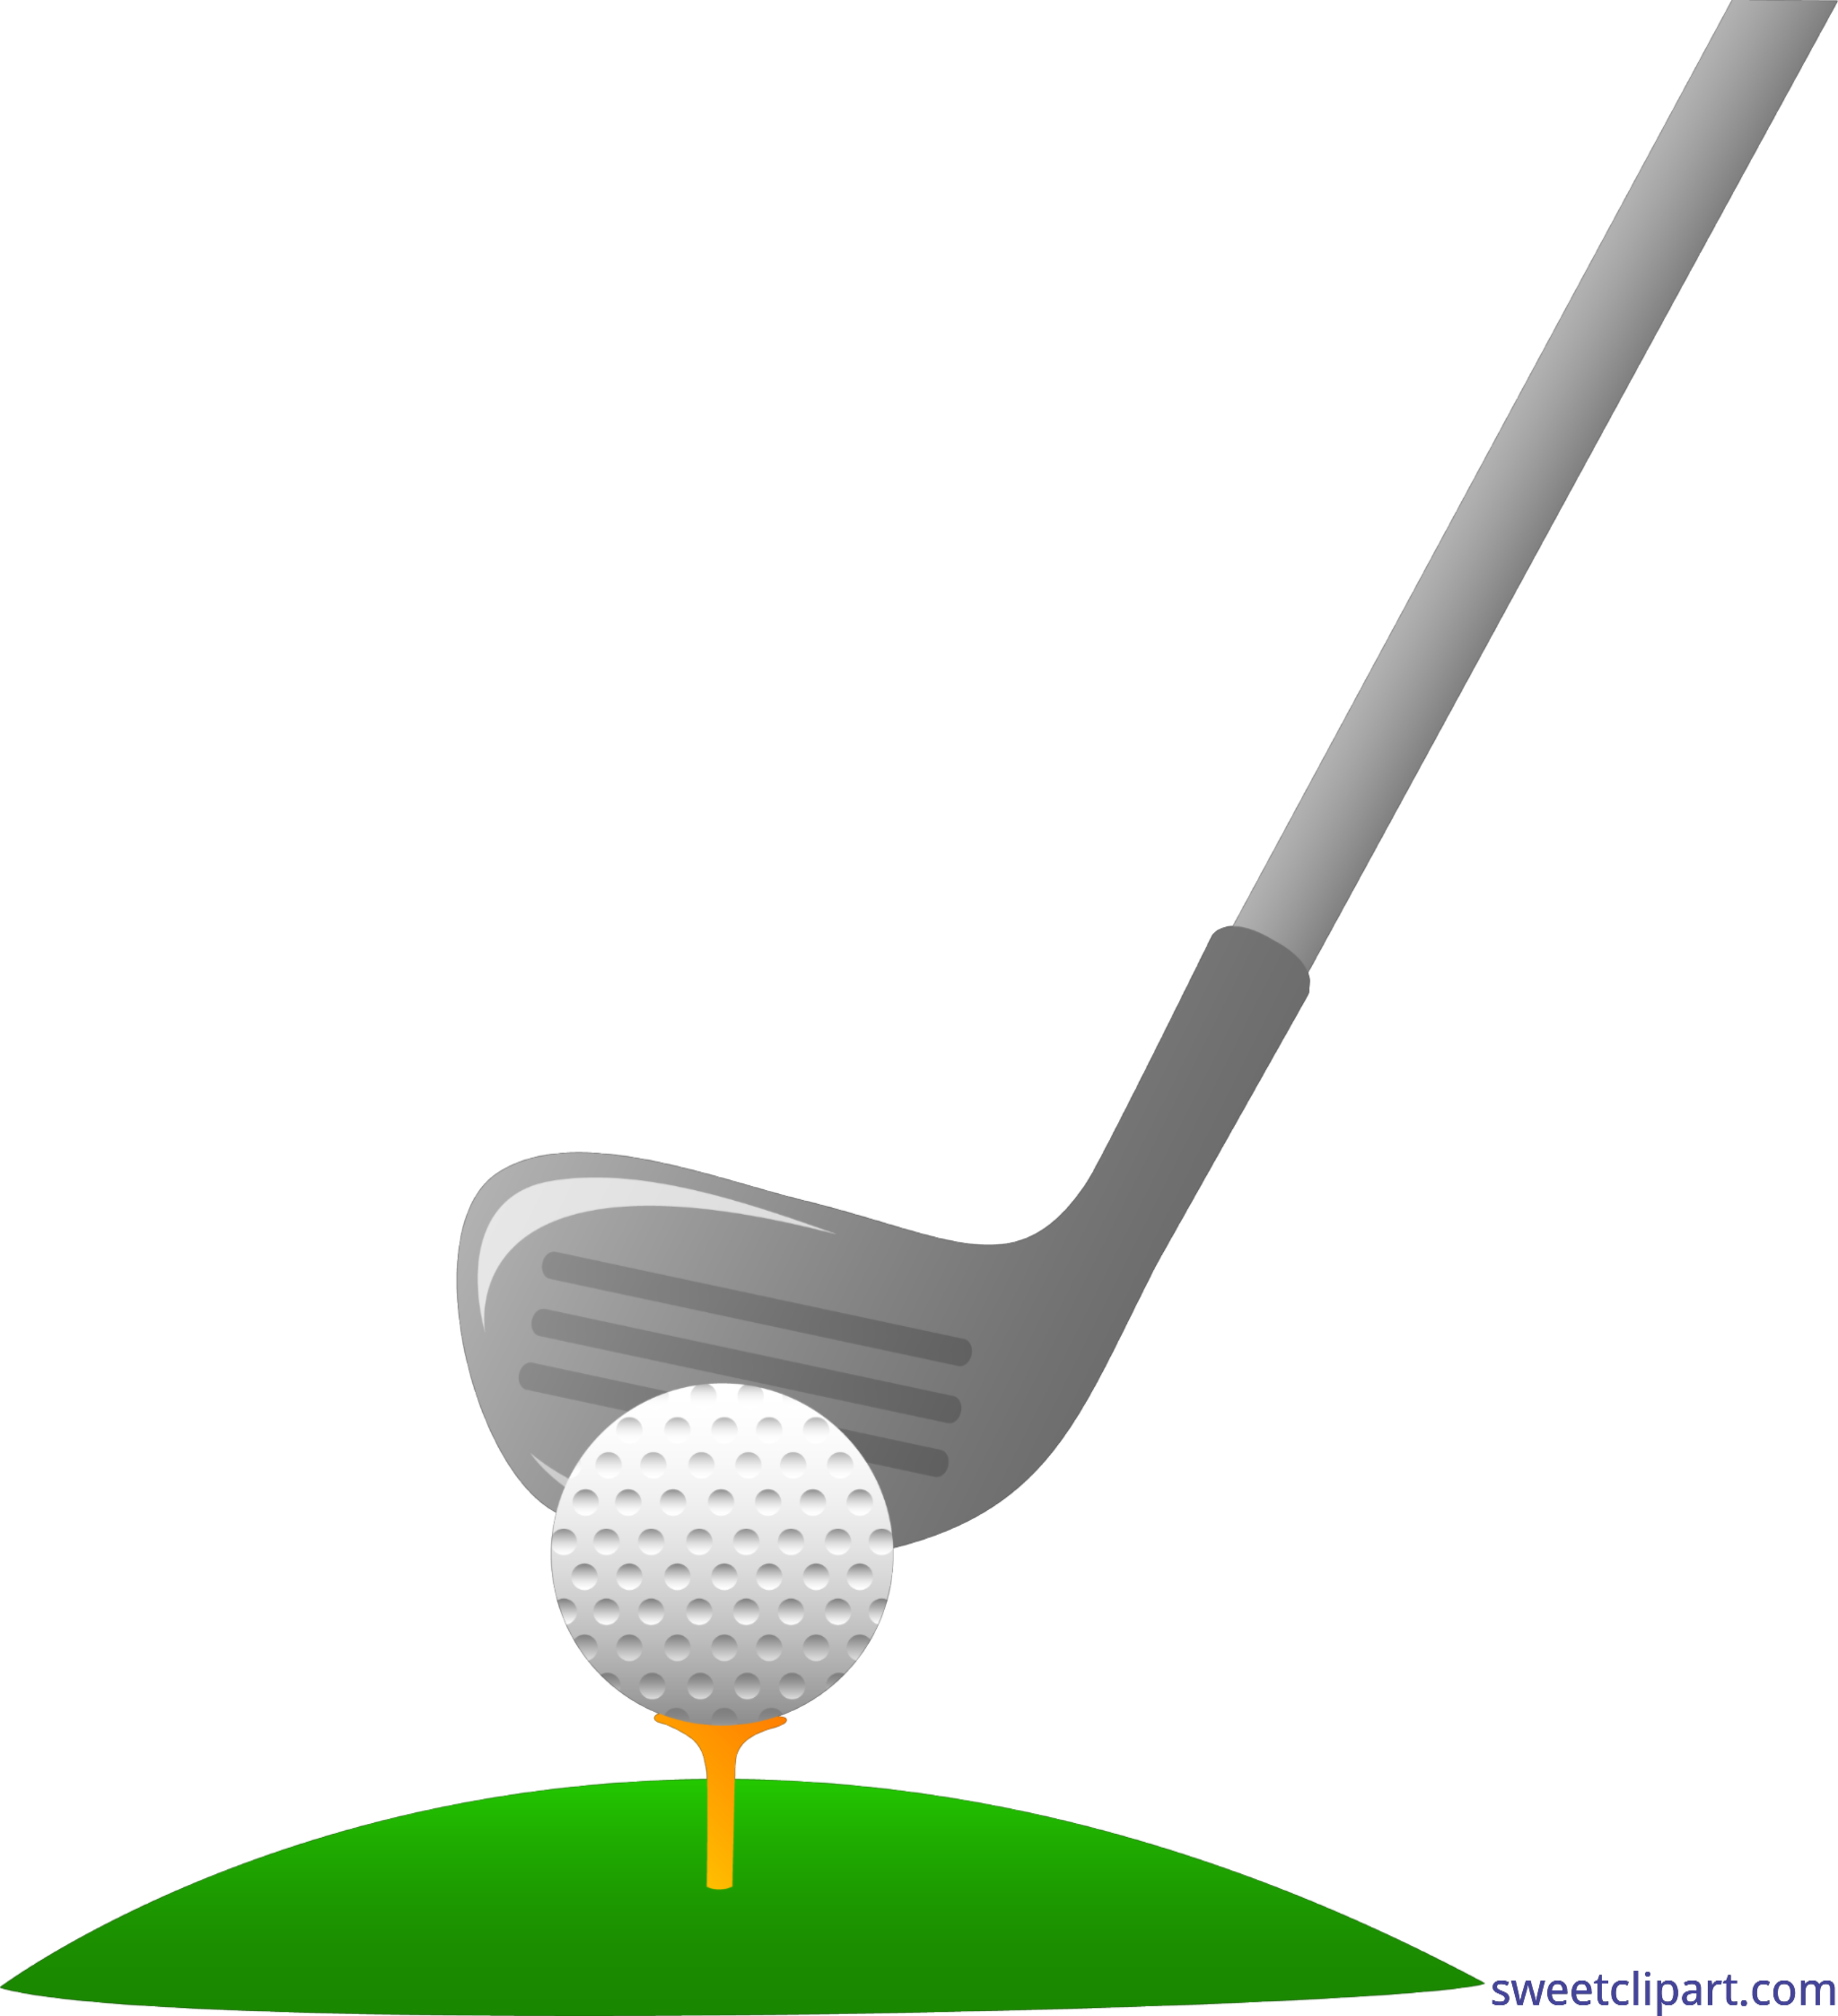 Club clipart number 1. Golf and ball clip